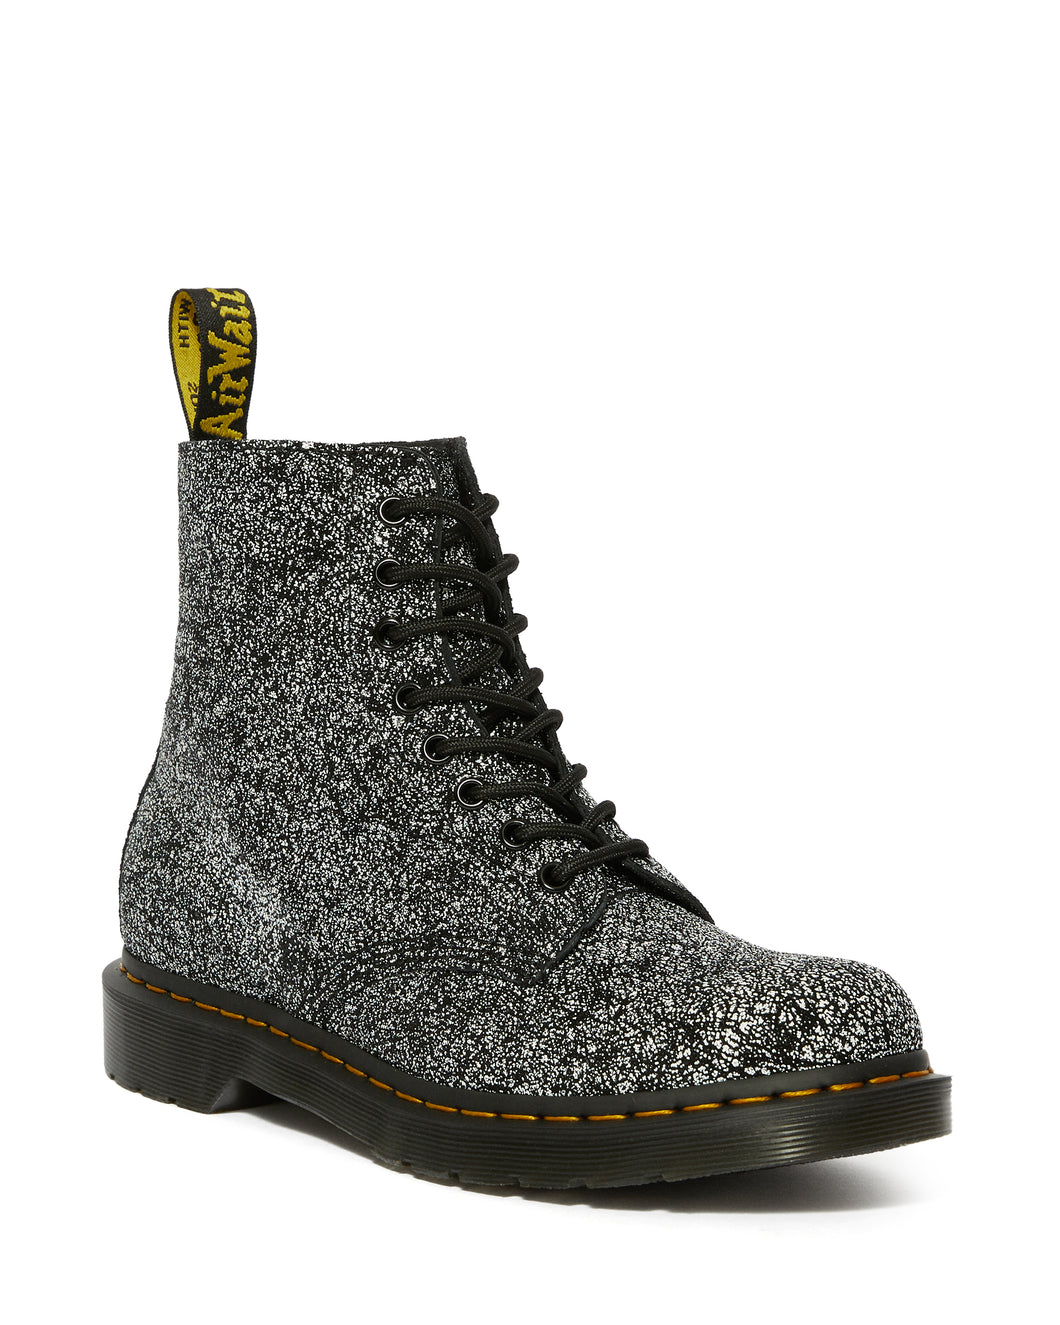 1460 PASCAL LEATHER SPLATTER PRINT BOOTS